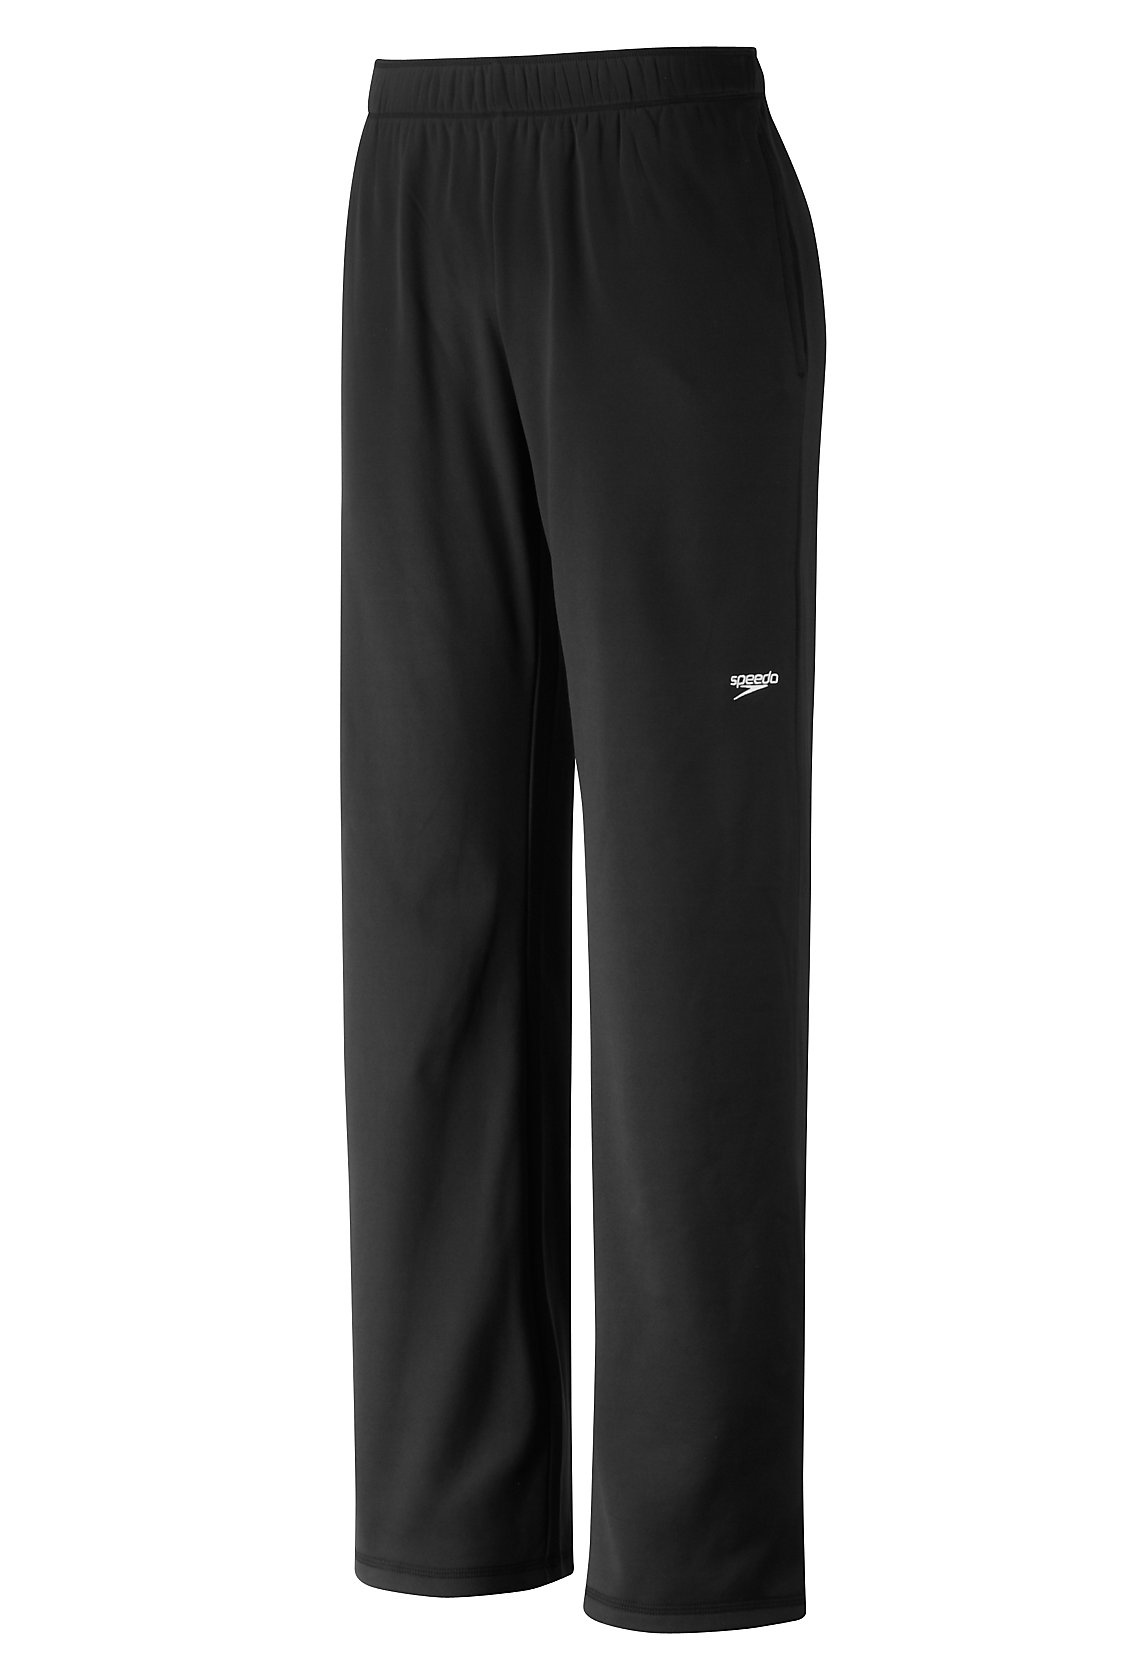 Speedo Youth Streamline Warm Up Pant - Unisex Speedo Black Small